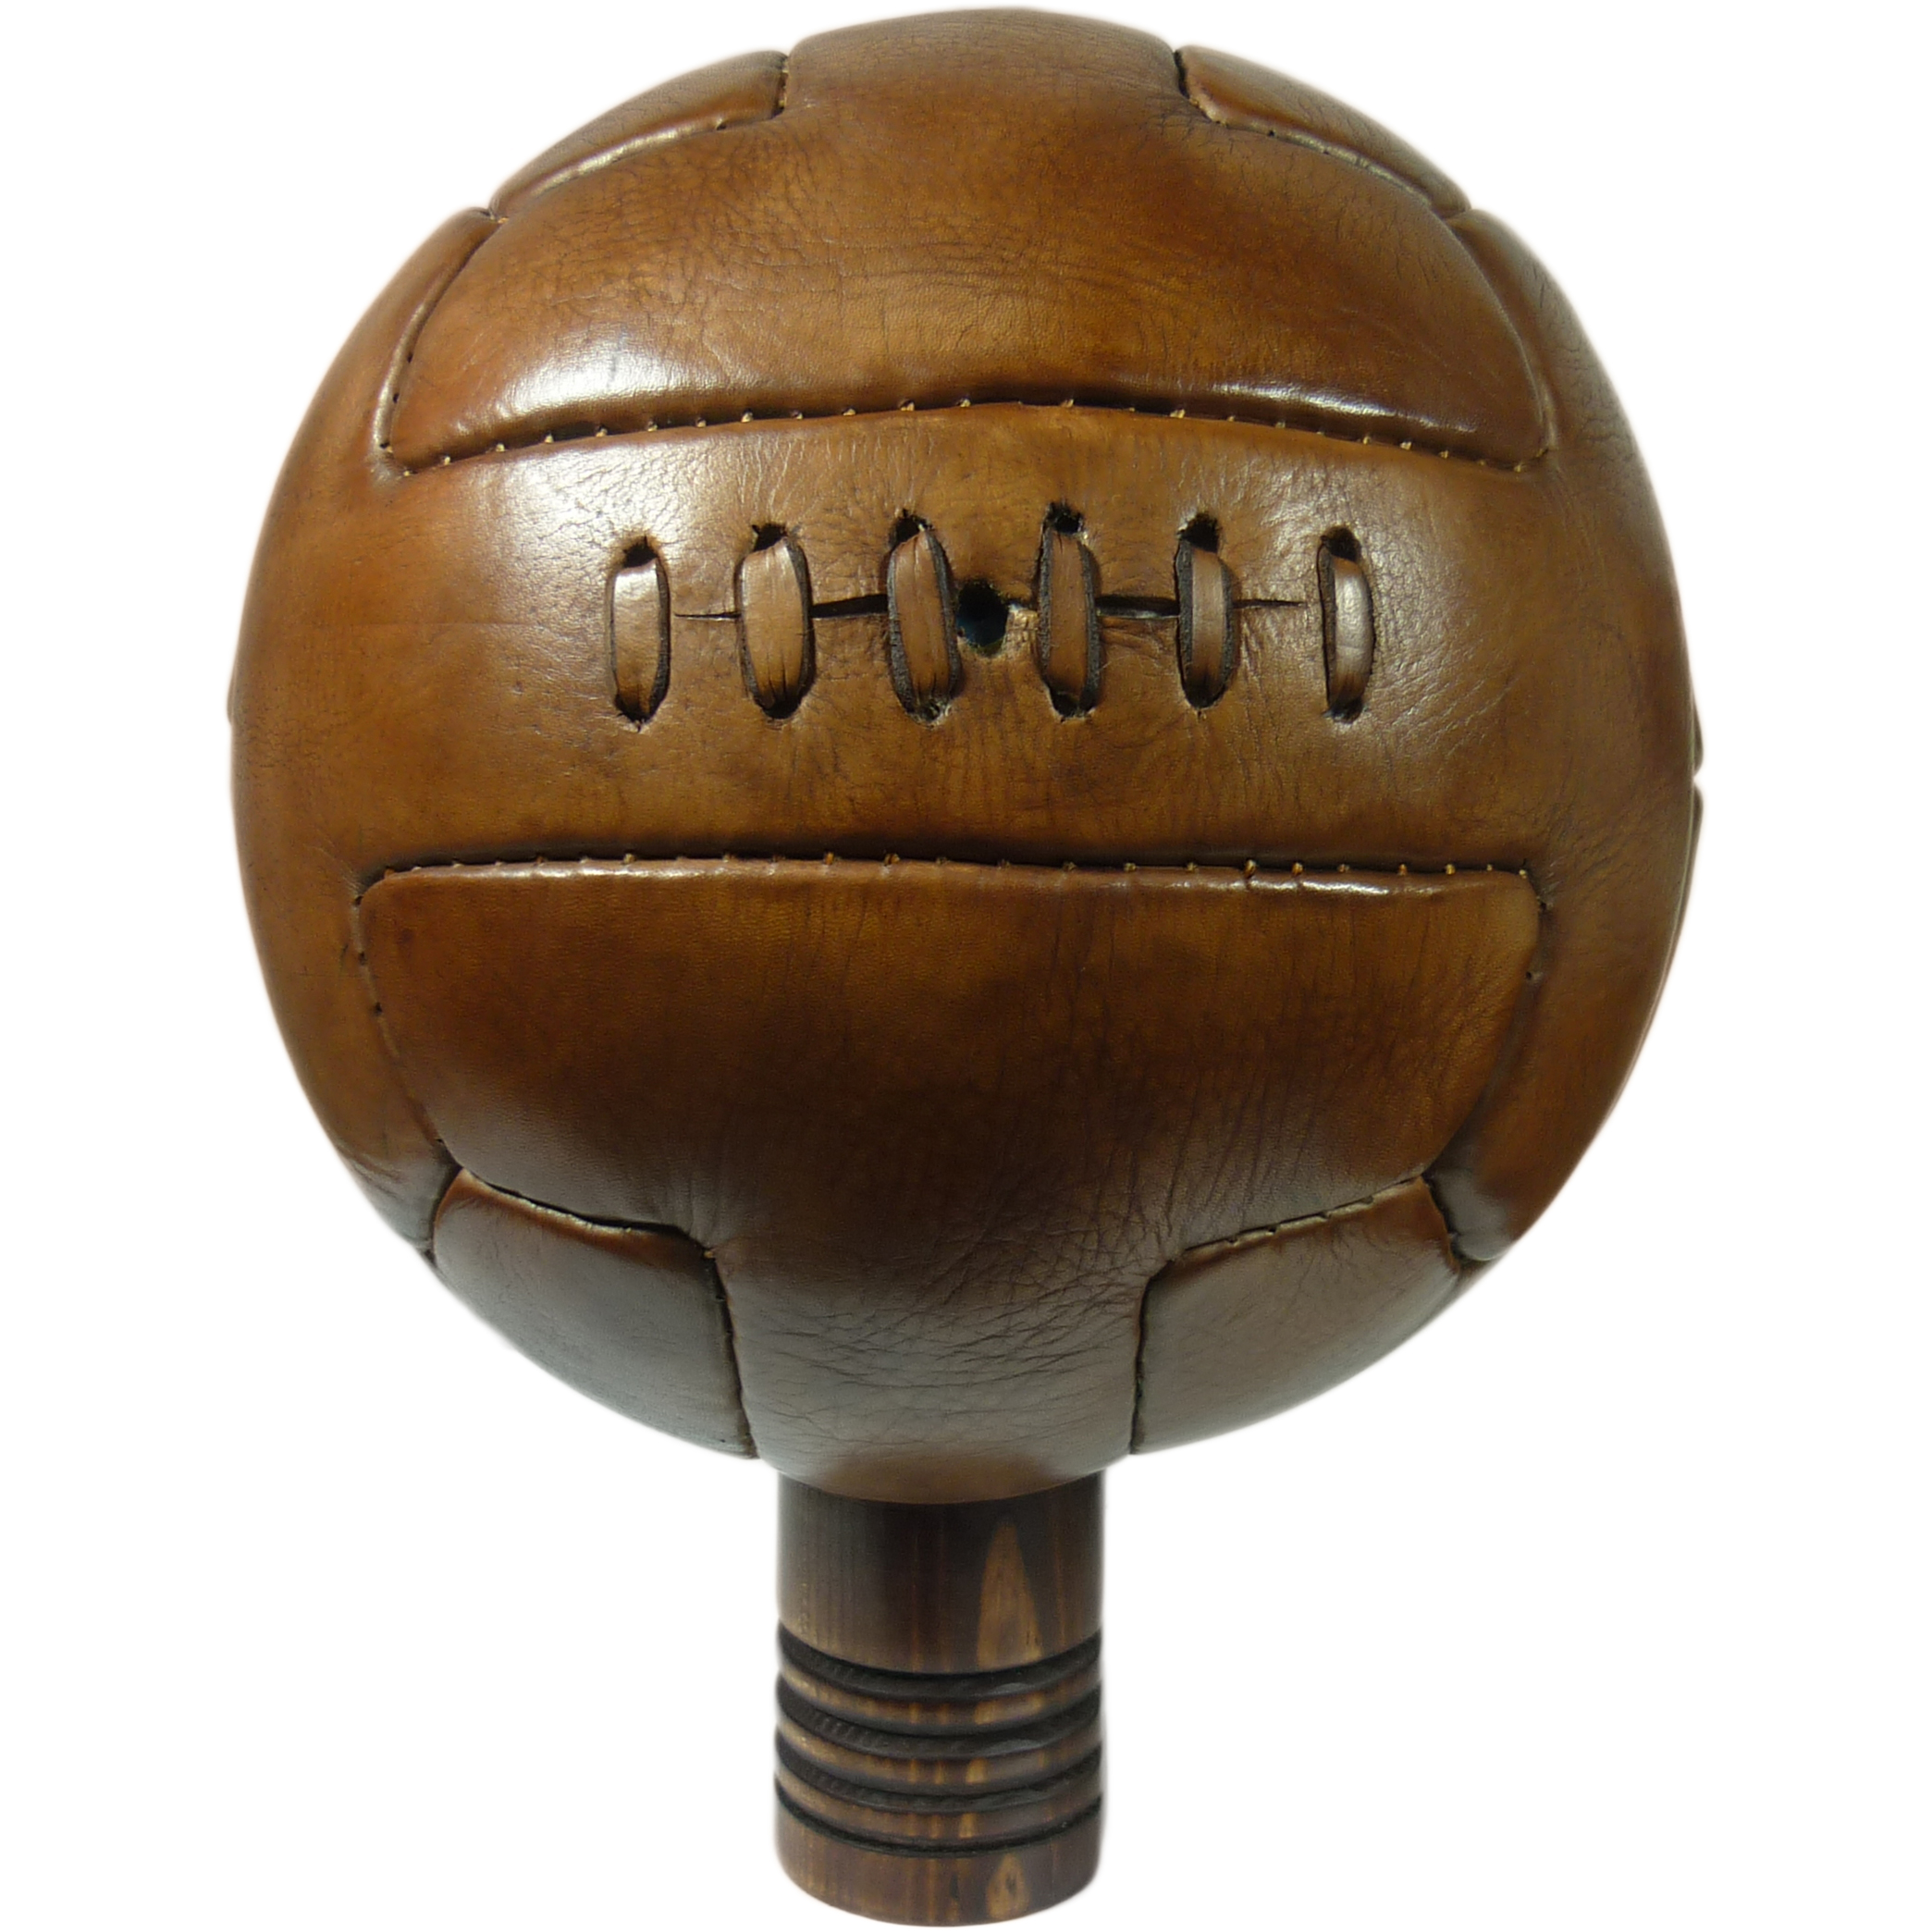 Ballon Football 1930 Tiento